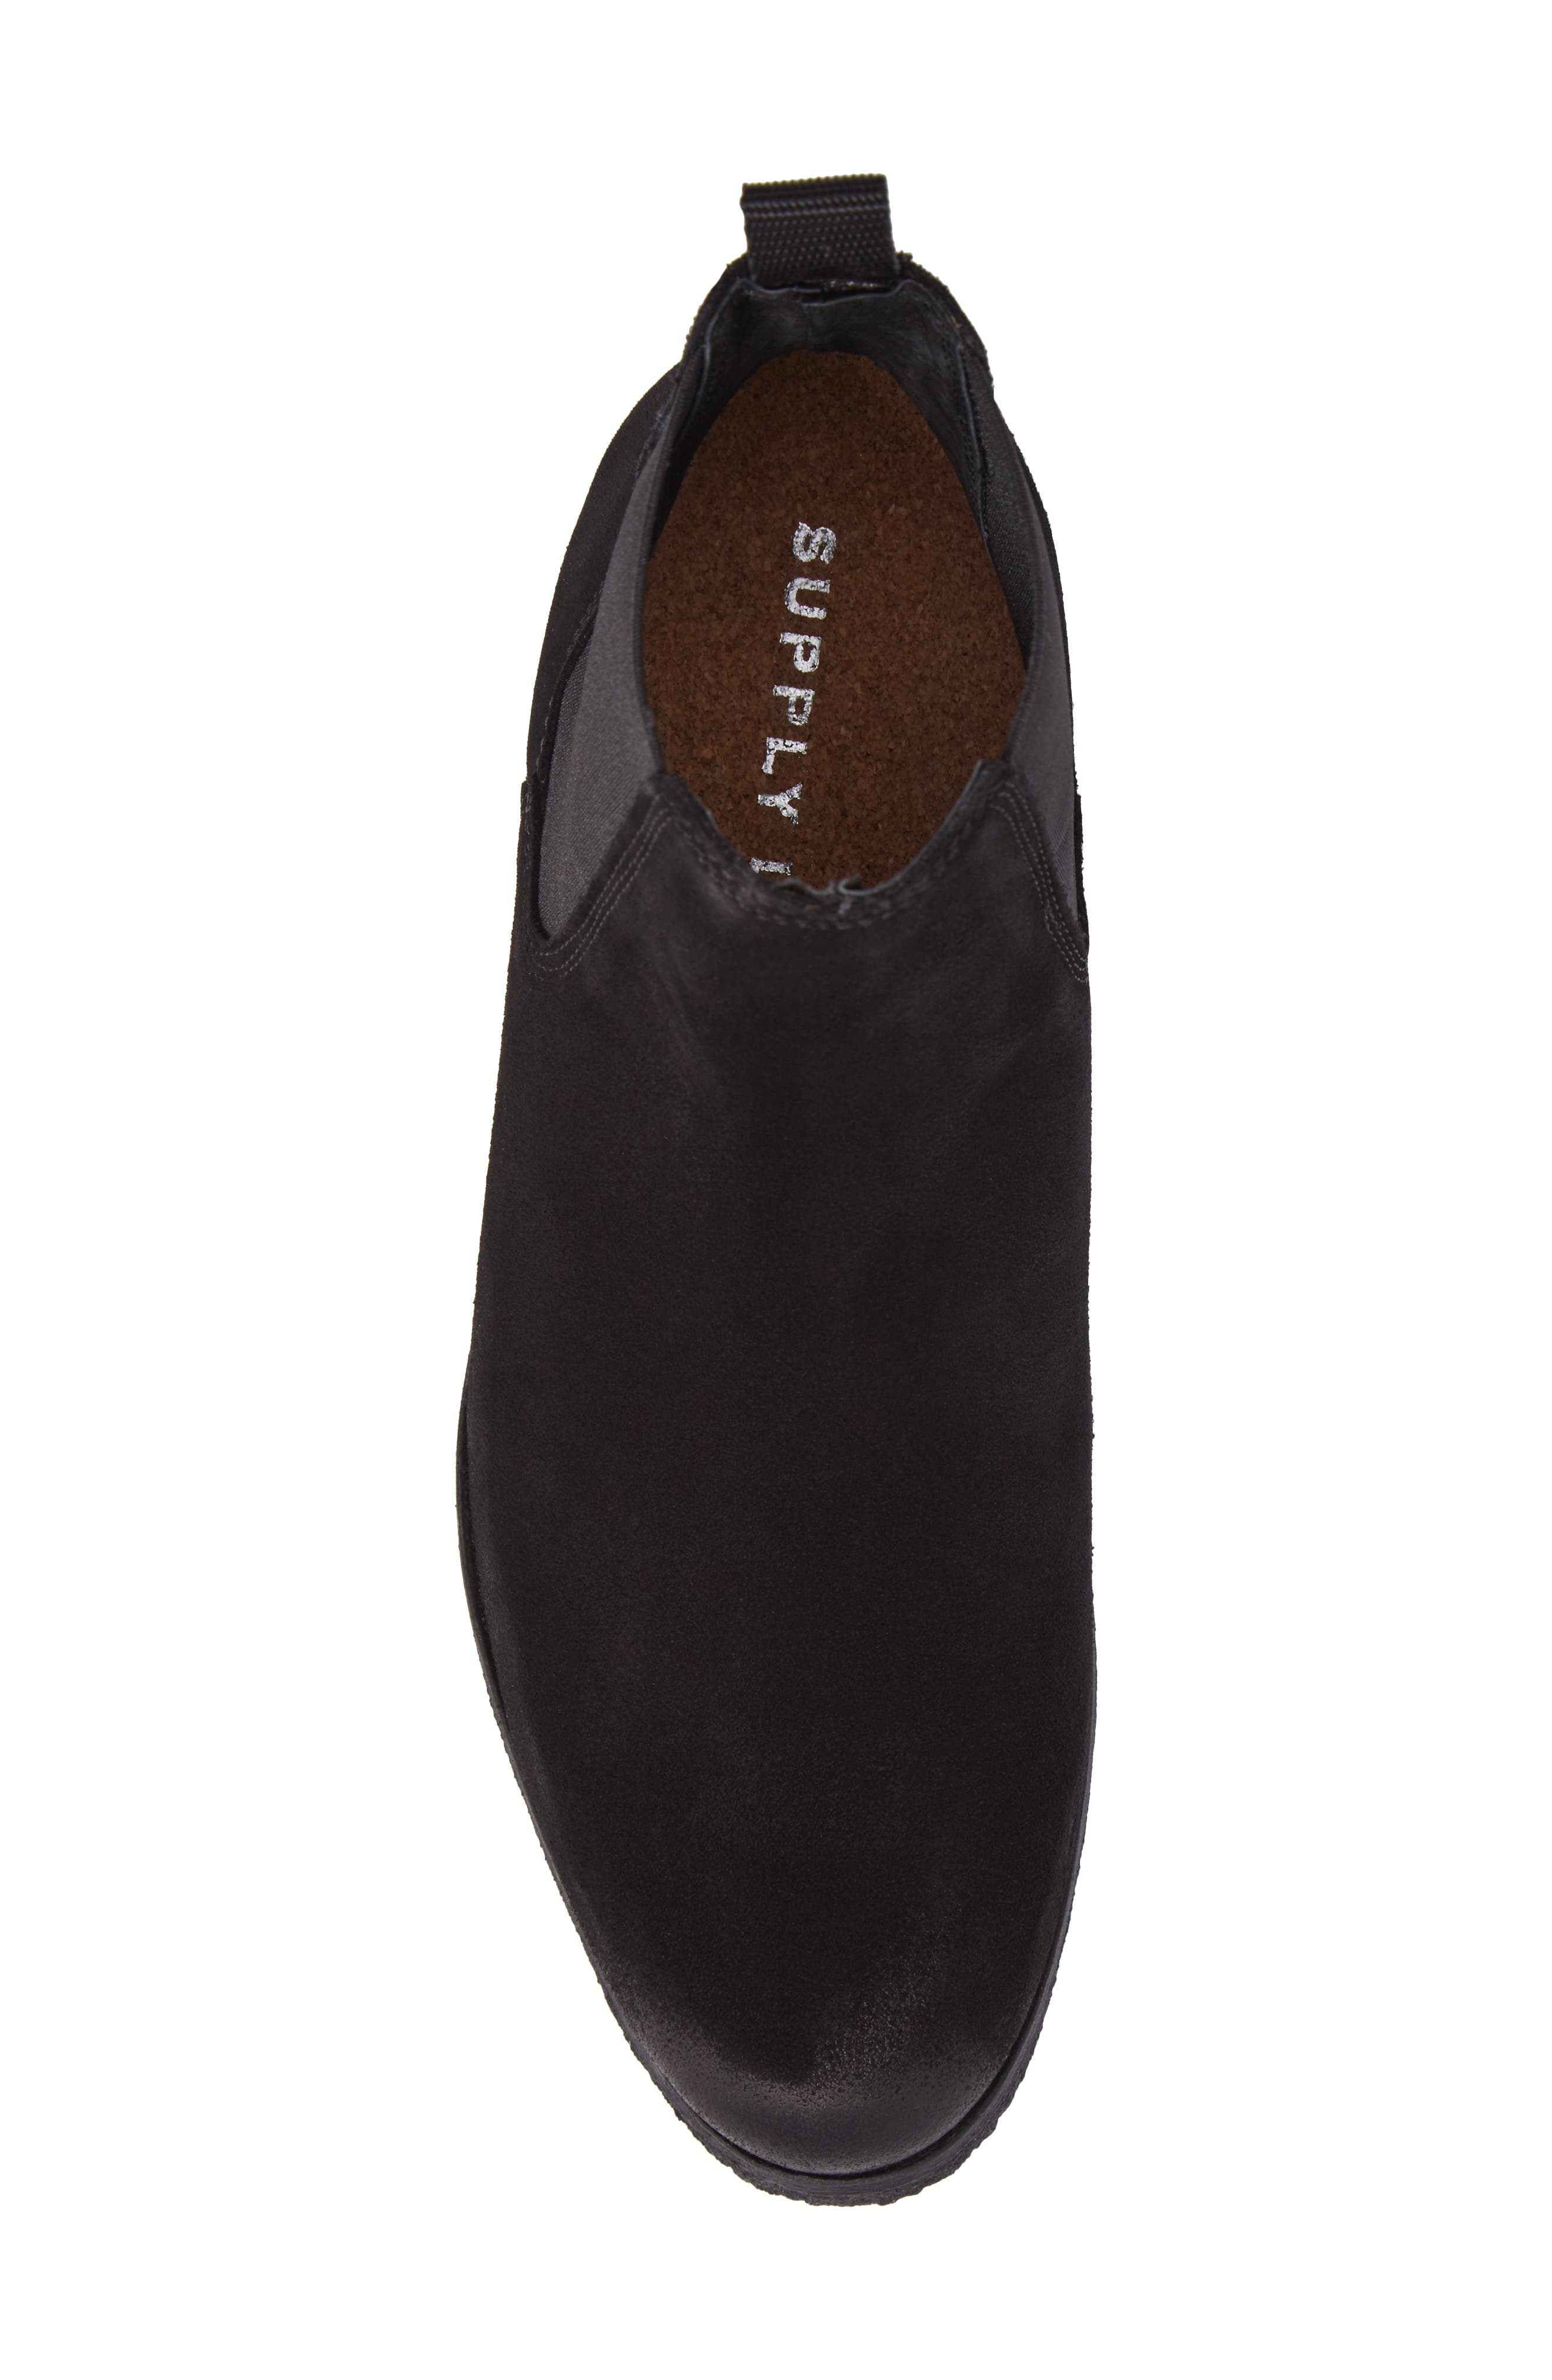 Jared Chelsea Boot,                             Alternate thumbnail 5, color,                             Black Suede